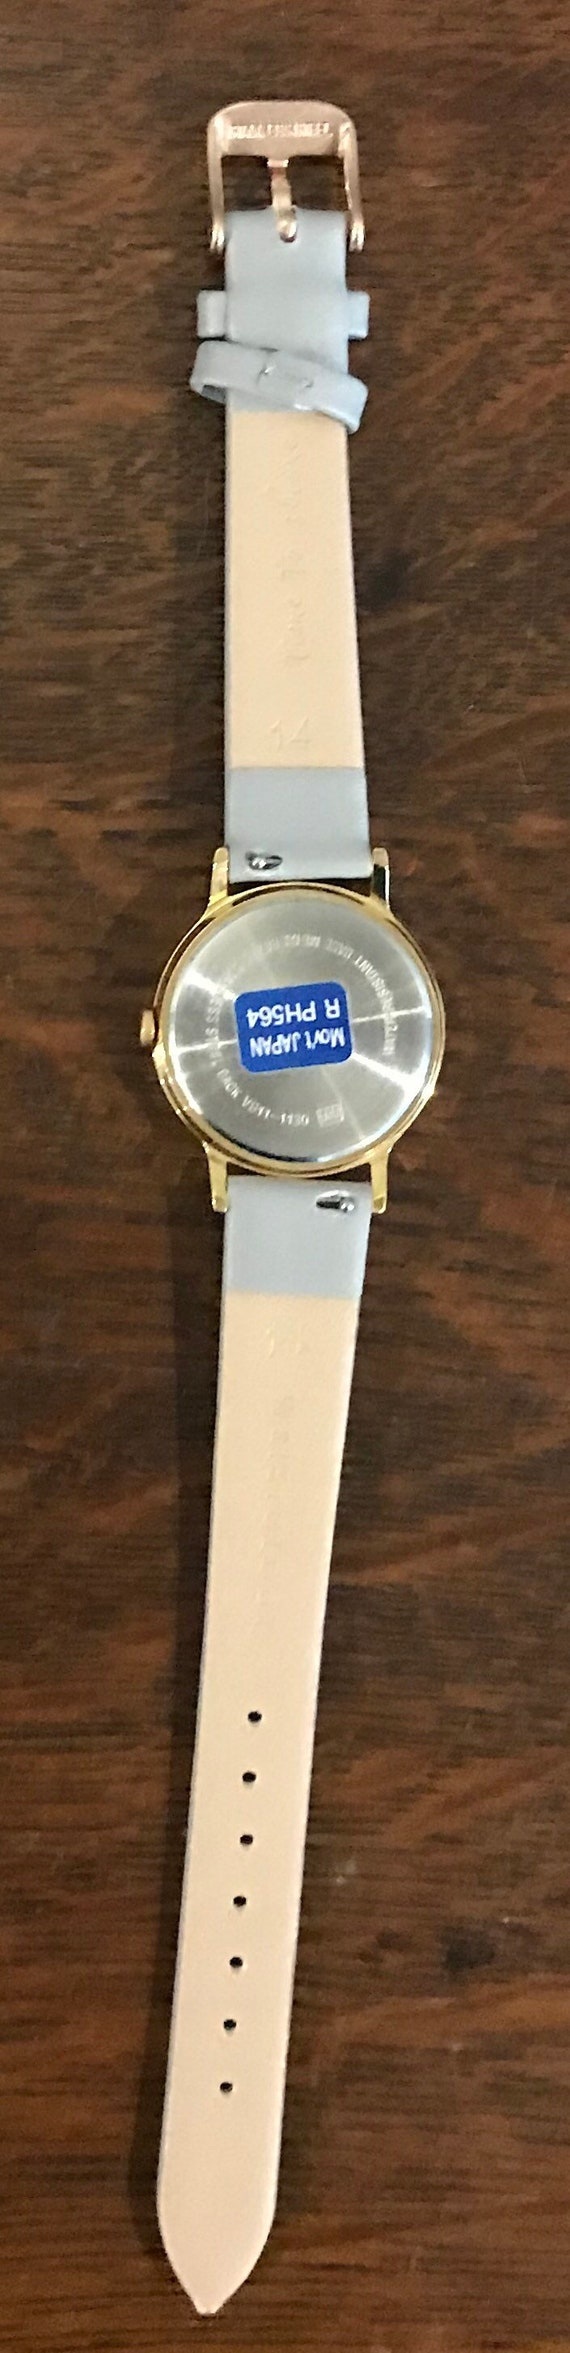 1991 Lorus Miss Piggy Watch- Vintage Women's Mupp… - image 8